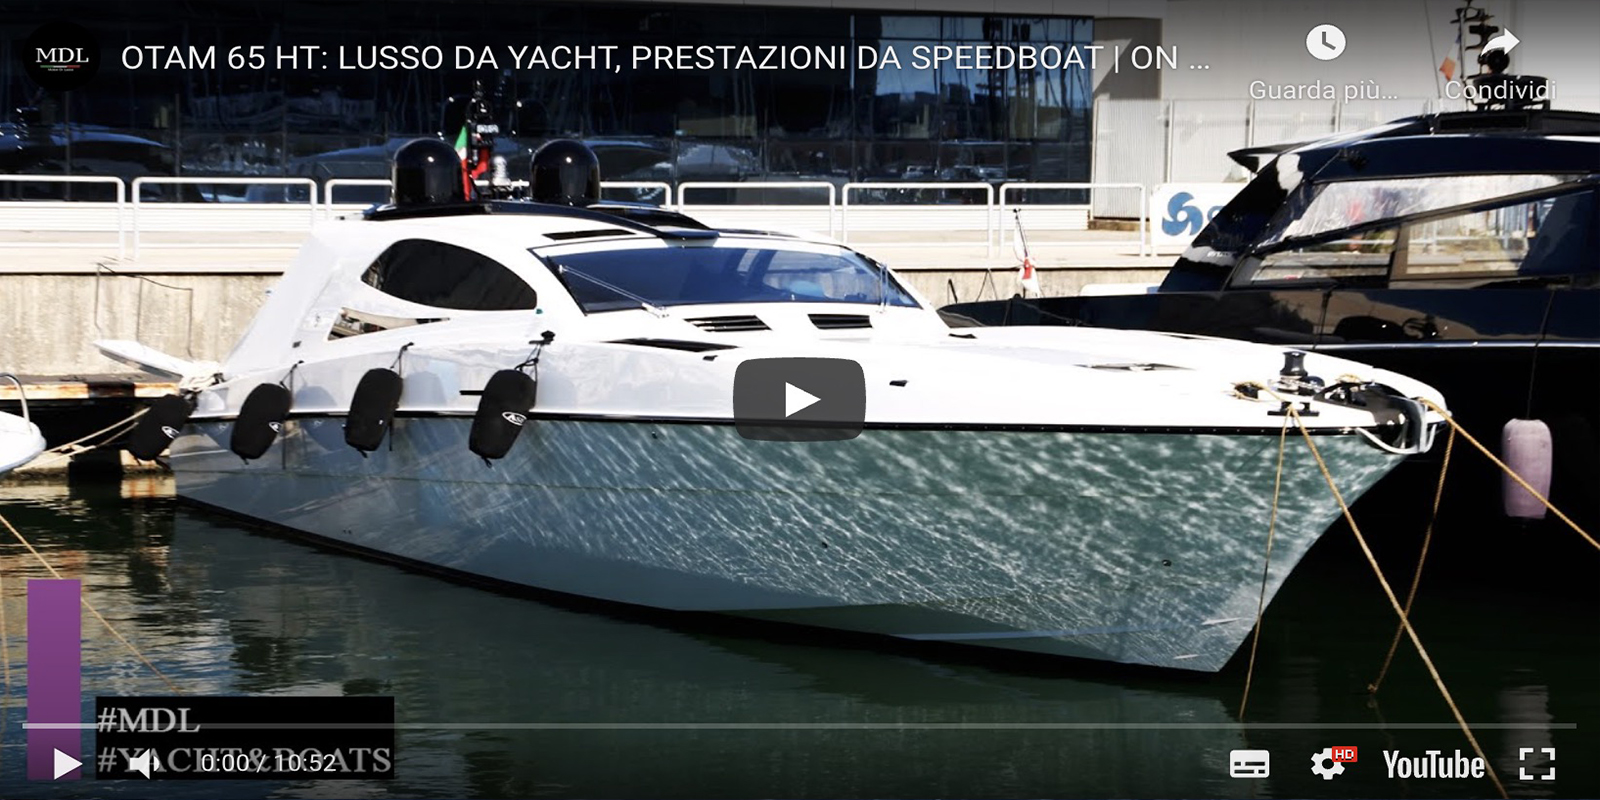 OTAM 65 HT: yacht luxury, speedboat performance